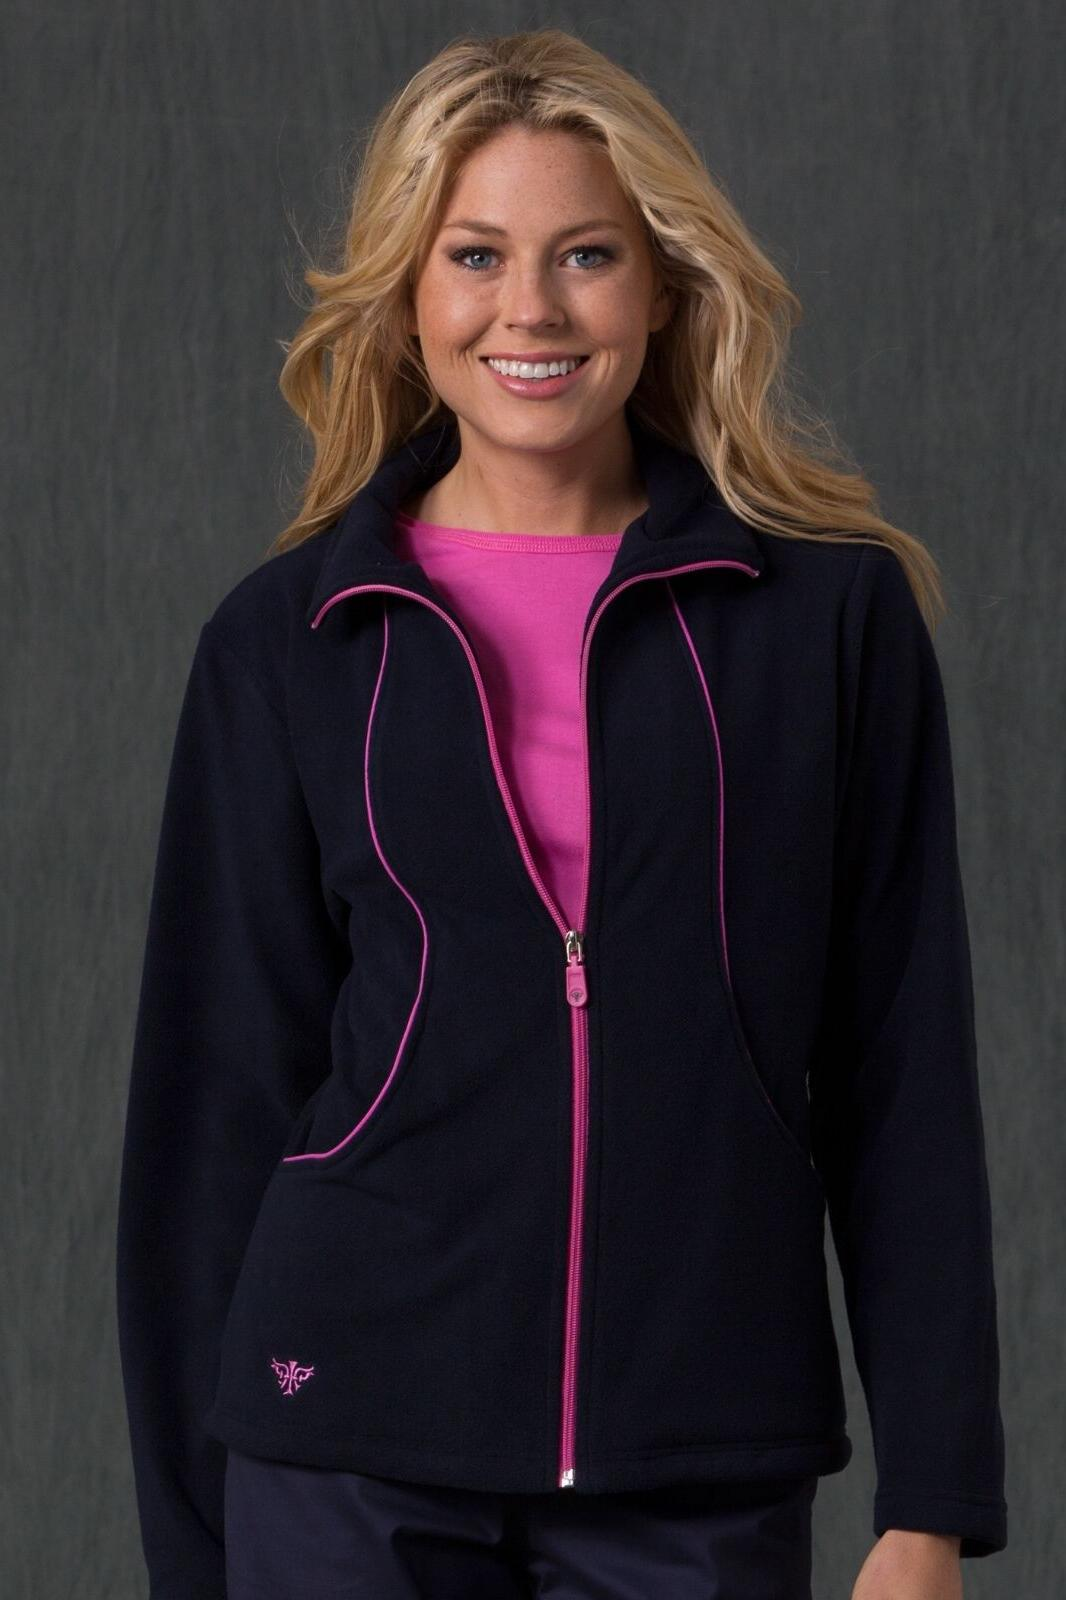 NEW WOMEN MED COUTURE DESIGNER NURSING UNIFORM FLEECE JACKET